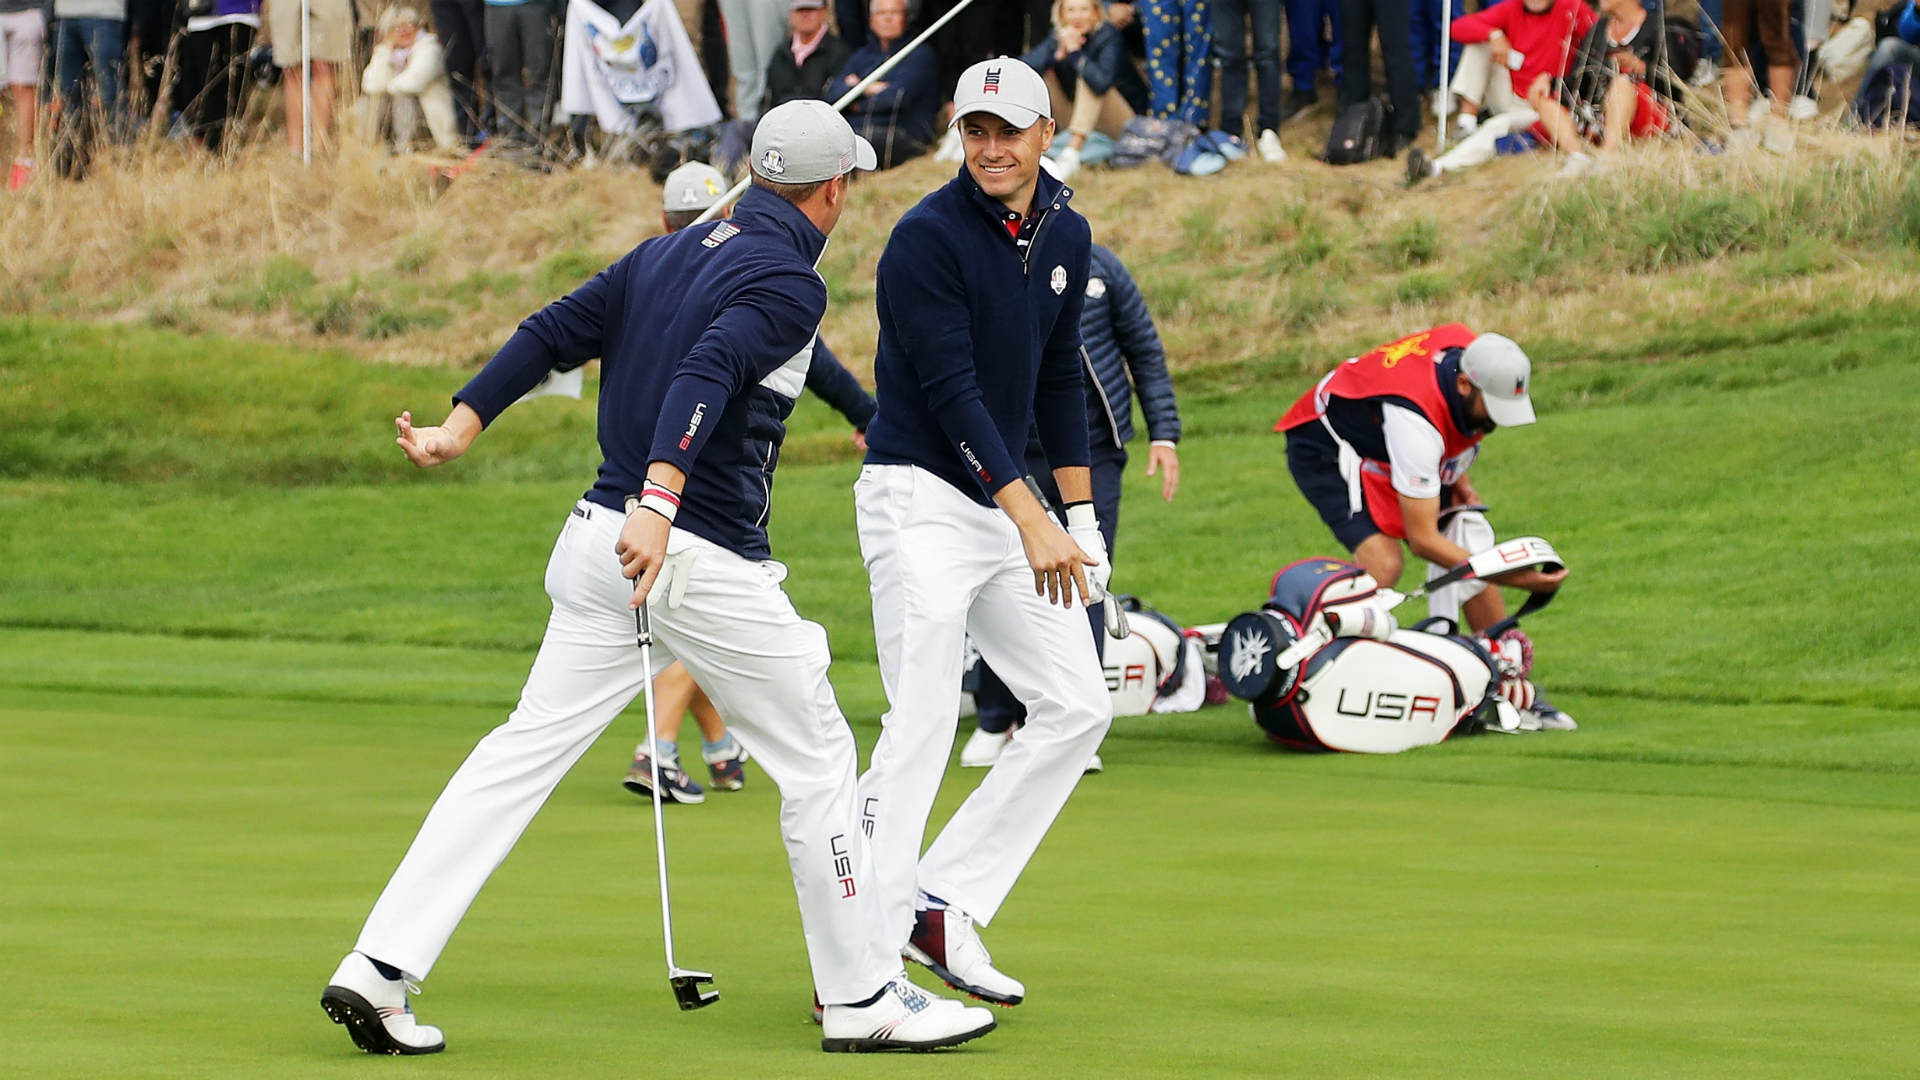 Ryder Cup: Looking ahead to possible U.S. 2020 roster